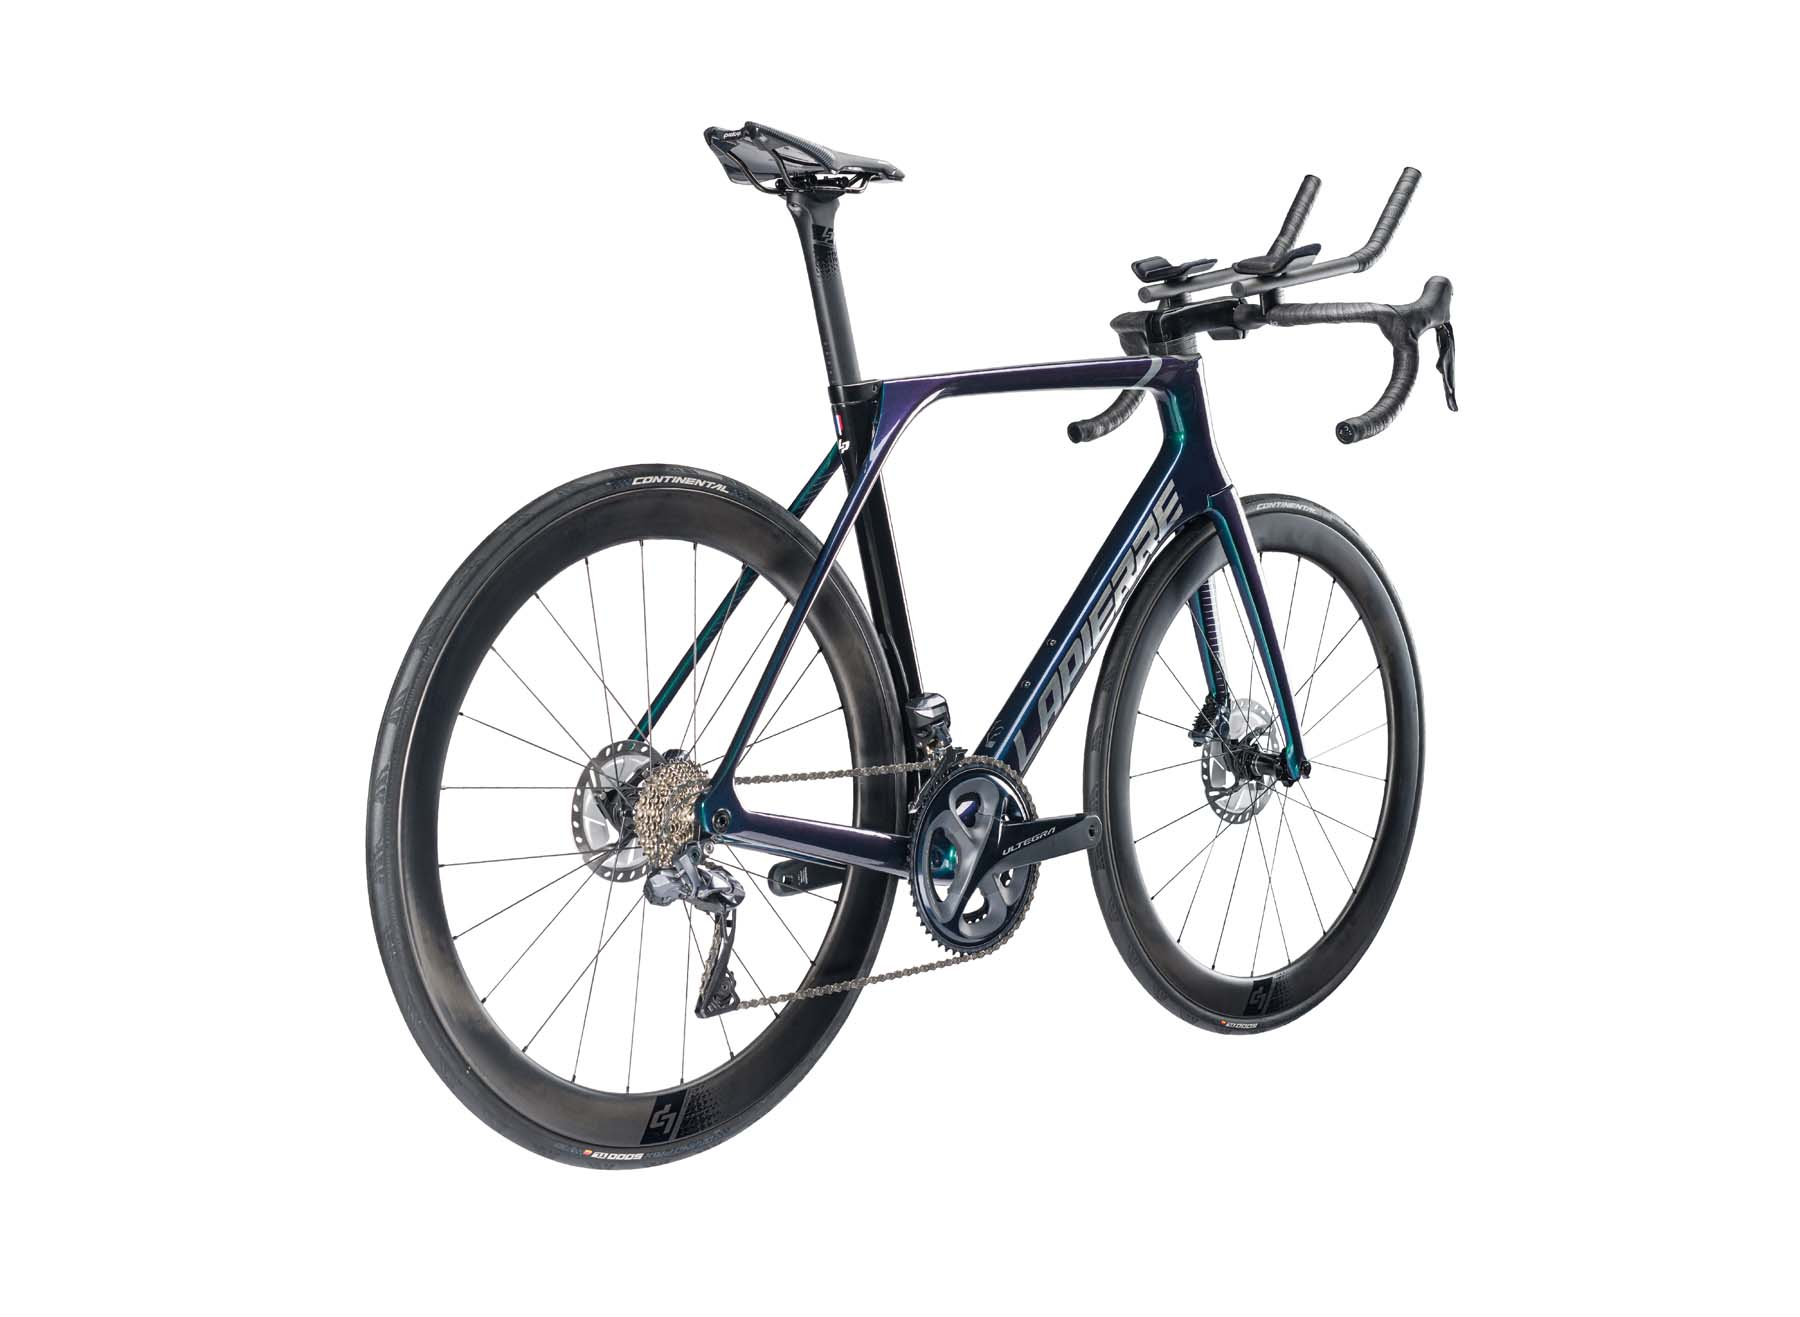 Lapierre Aircode DRS 7.0 2021 Performance Road Bike 7